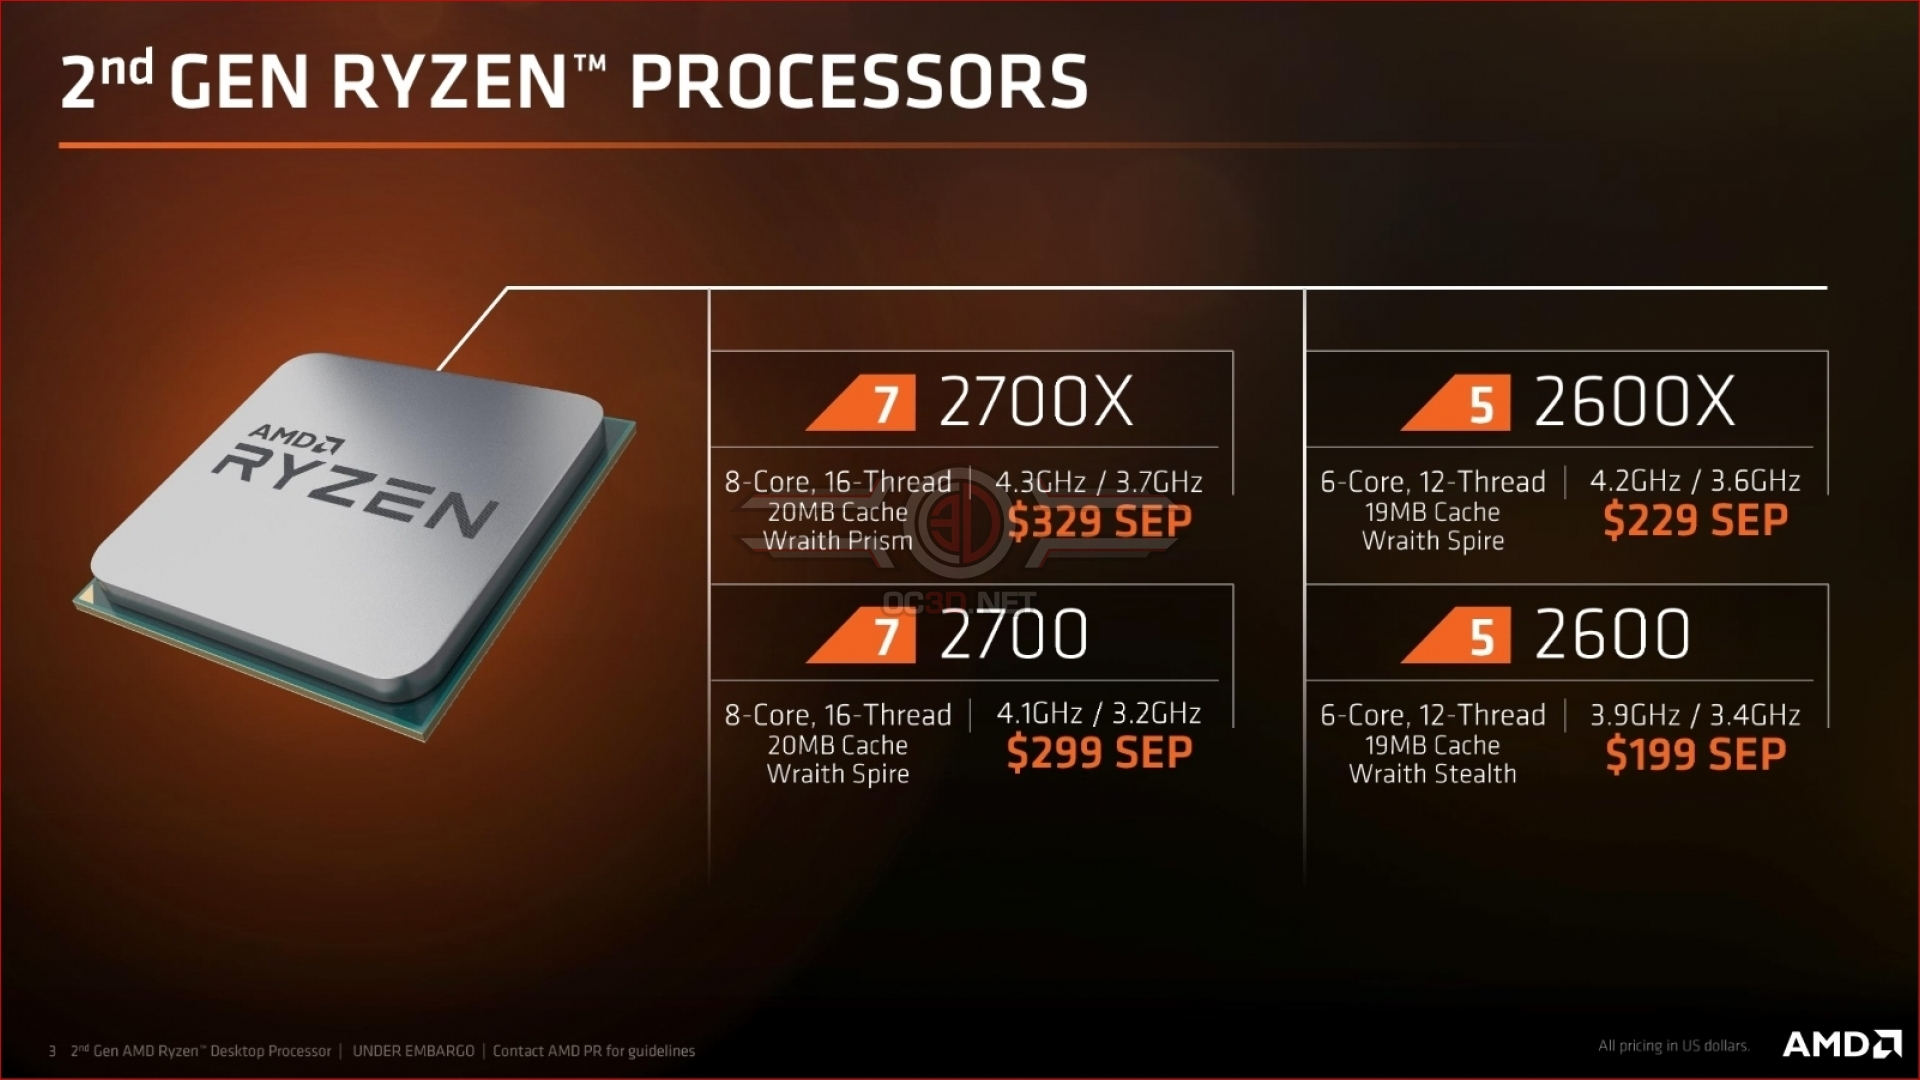 Amd Ryzen 5 2600x And Ryzen 7 2700x Review Introduction And Technical Specifications Cpu Mainboard Oc3d Review